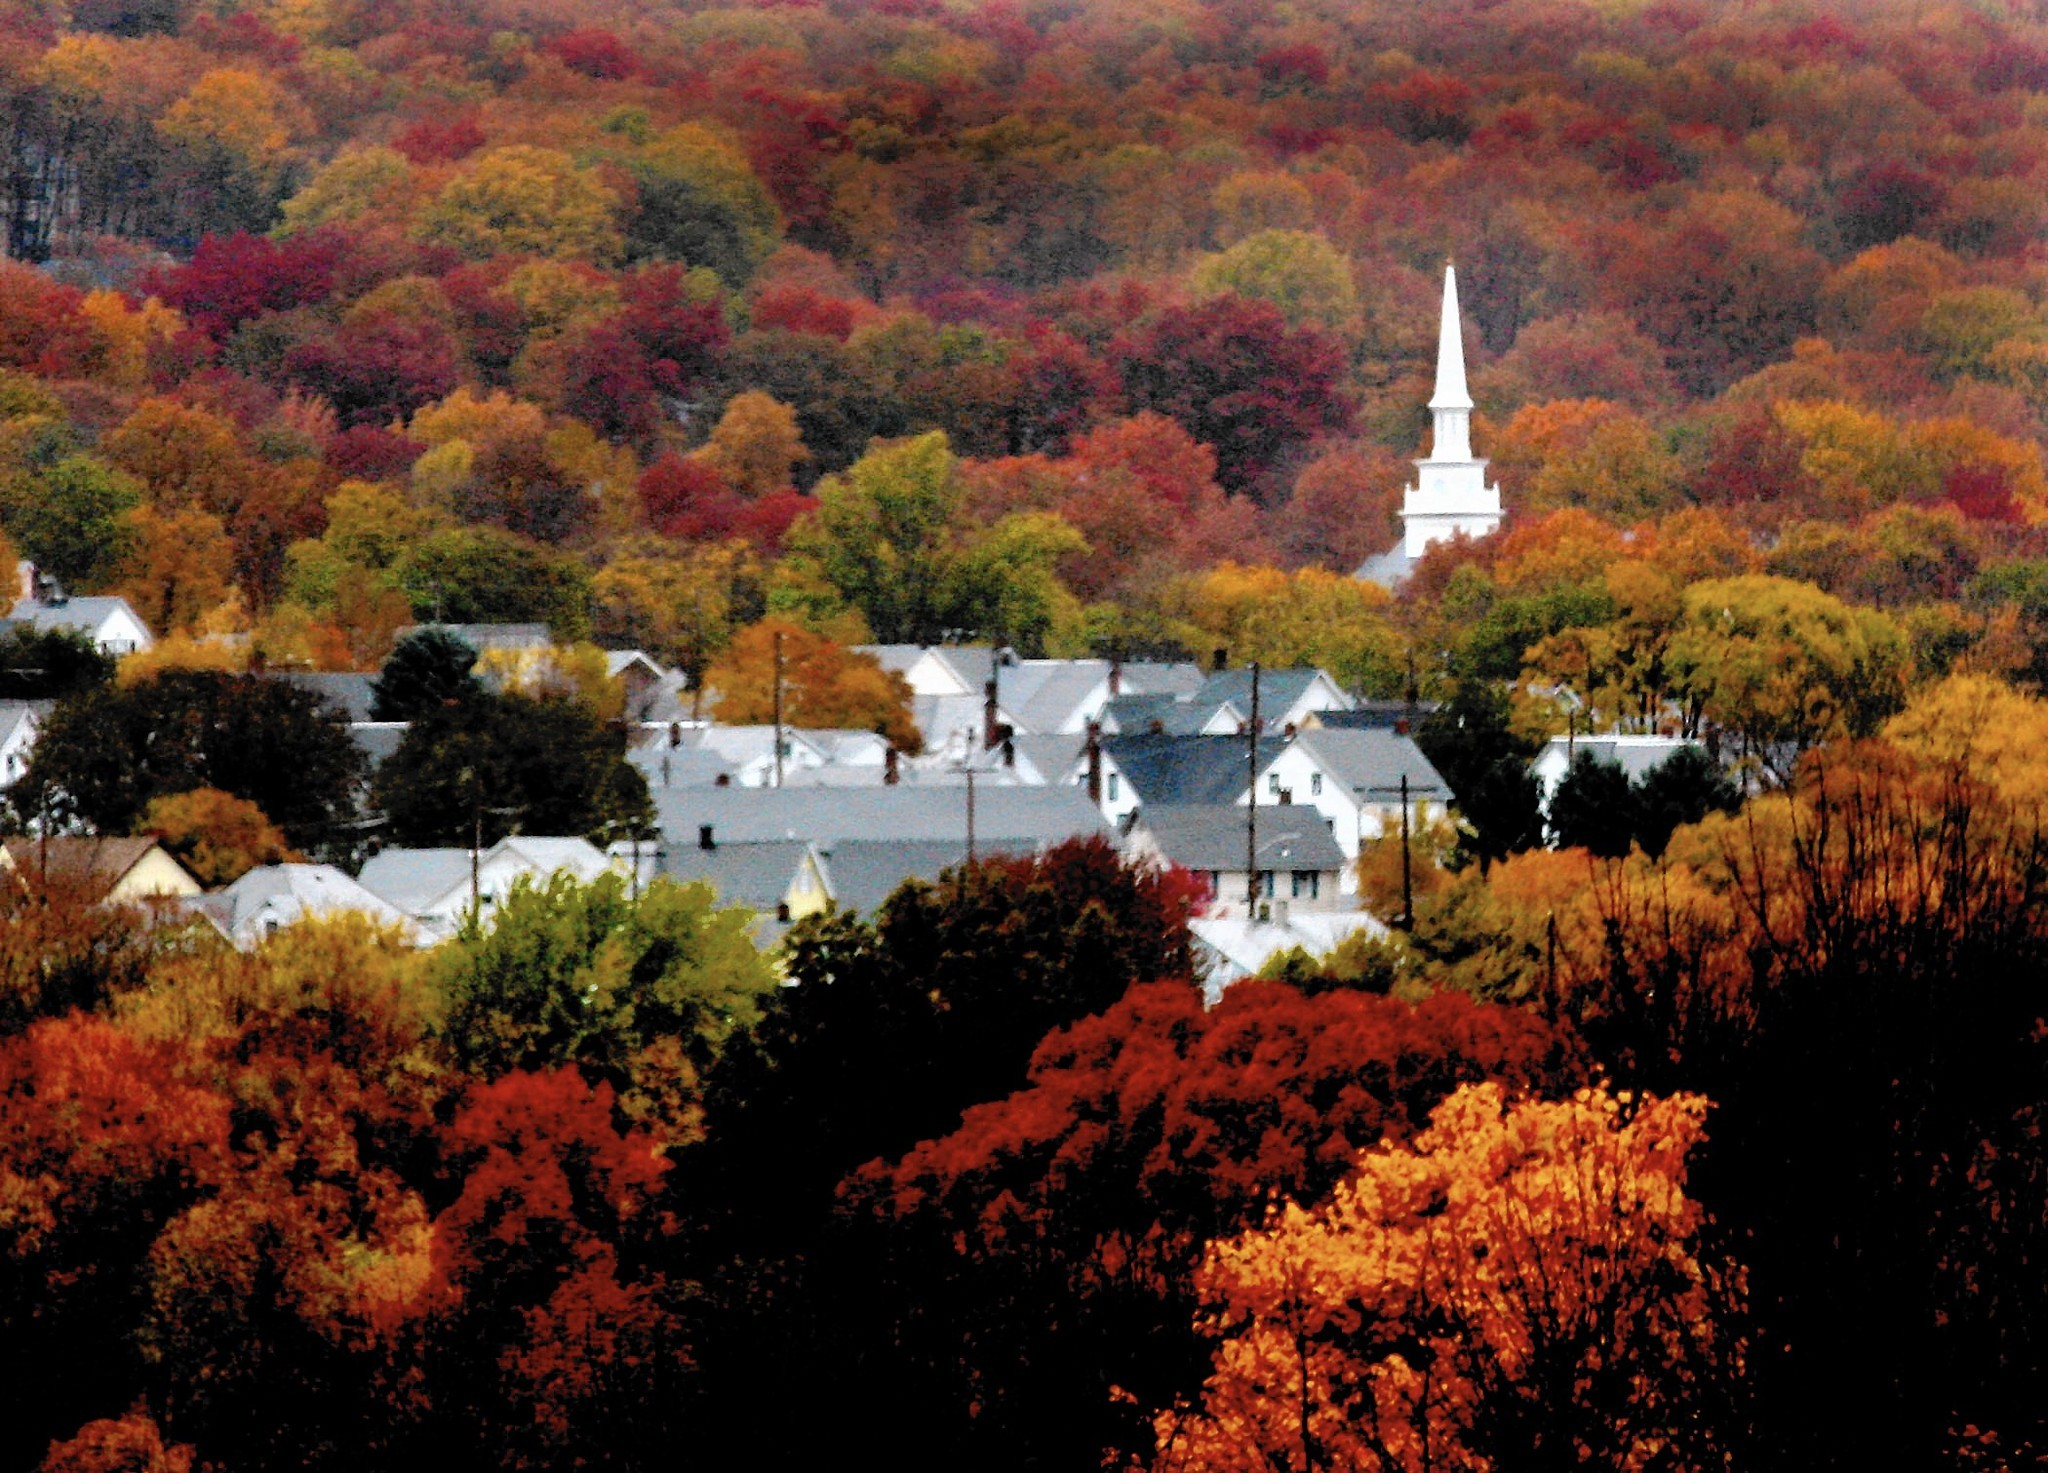 Fall foliage in the Lehigh Valley region: 4 great road trips - The ...